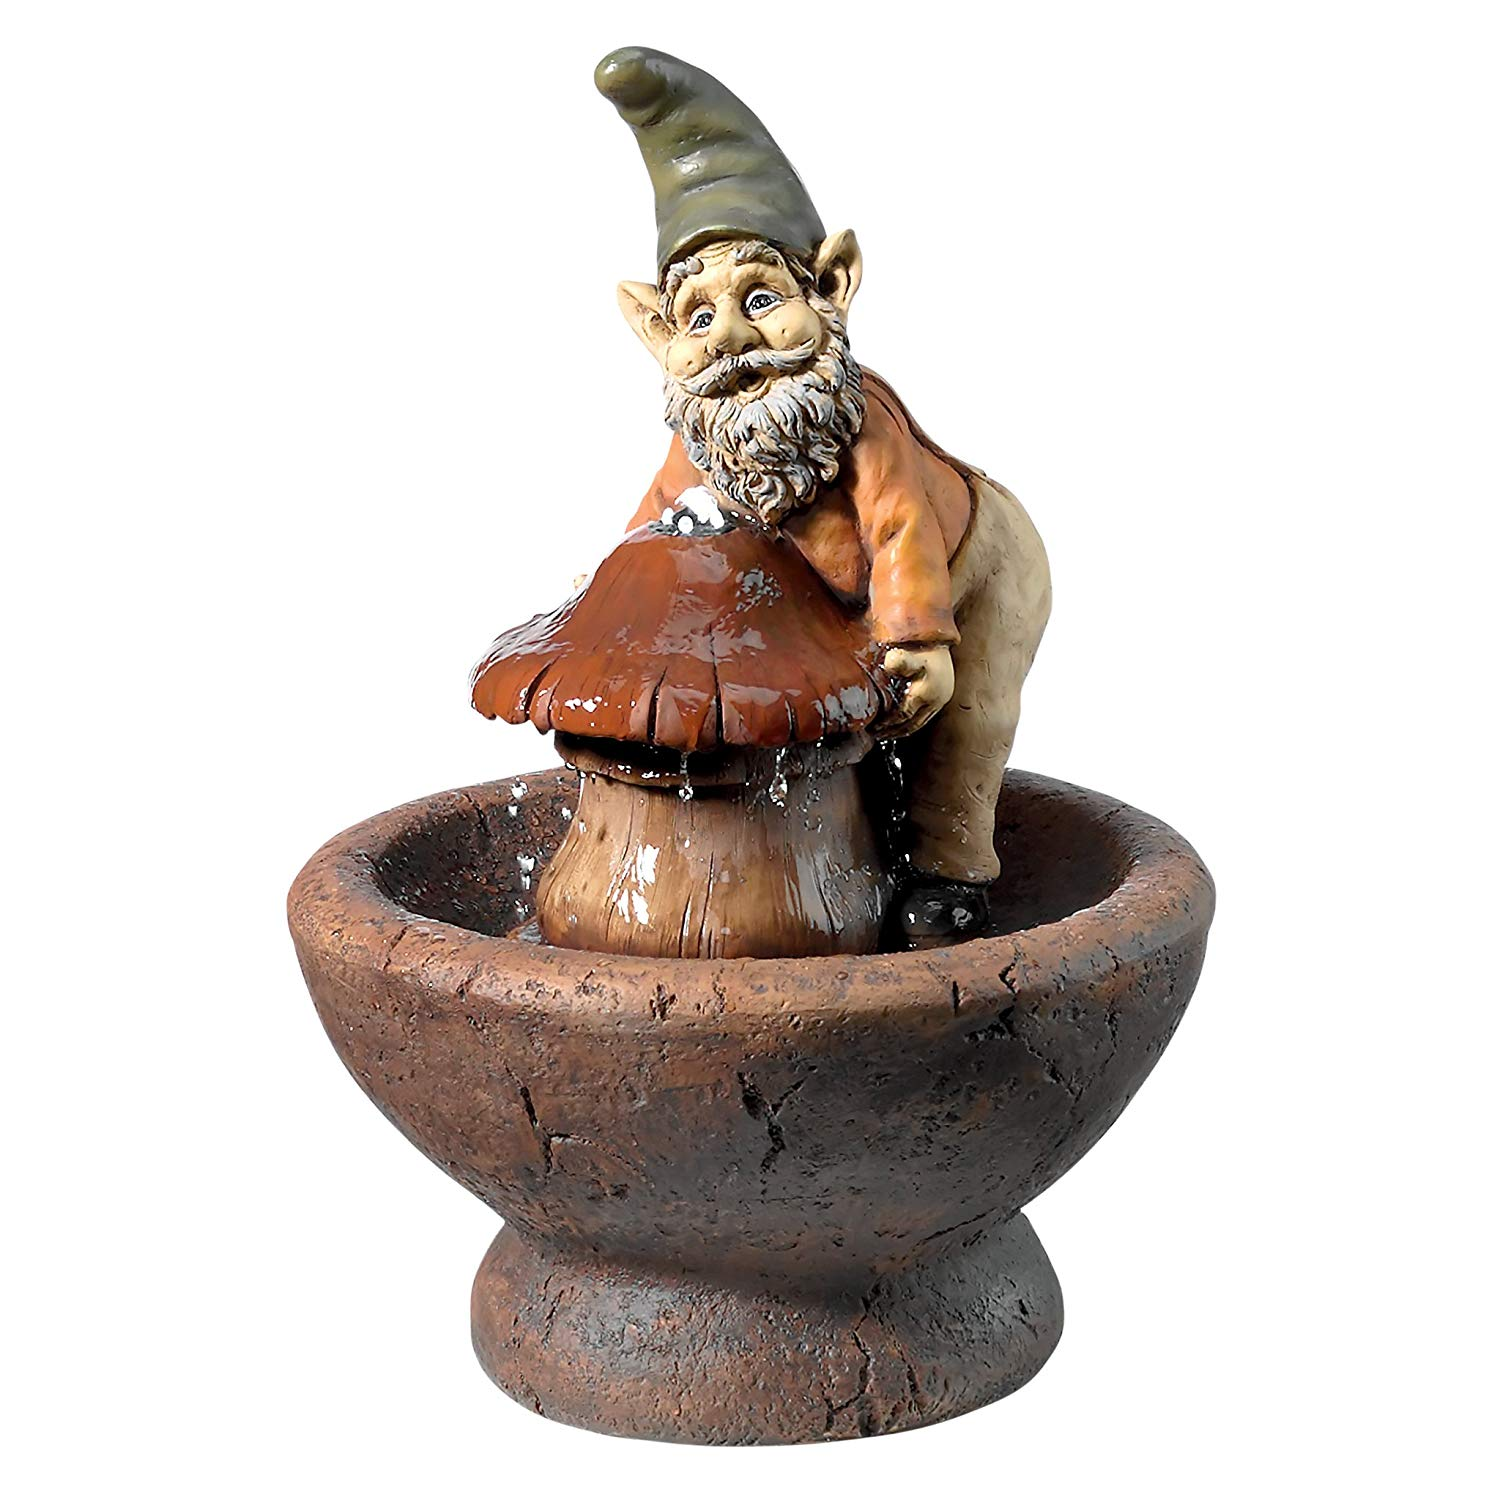 Design Toscano Water Fountain with LED Light - Manny and His Mushroom Garden Gnome Fountain - Outdoor Water Feature